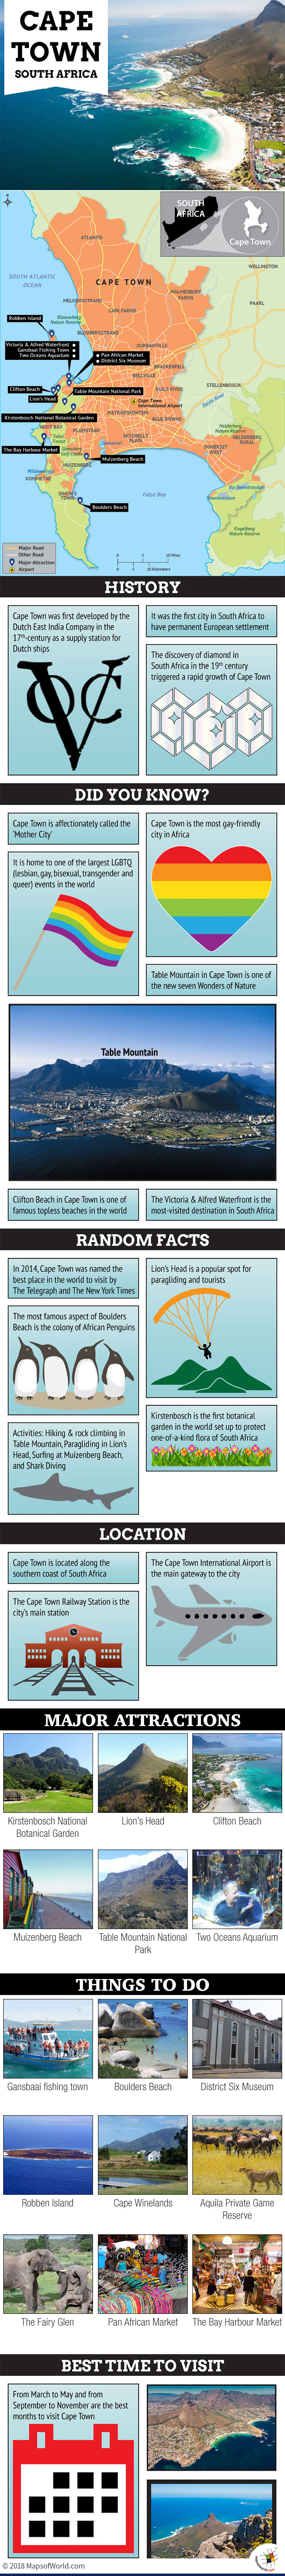 Infographic Depicting Cape Town Tourist Attractions